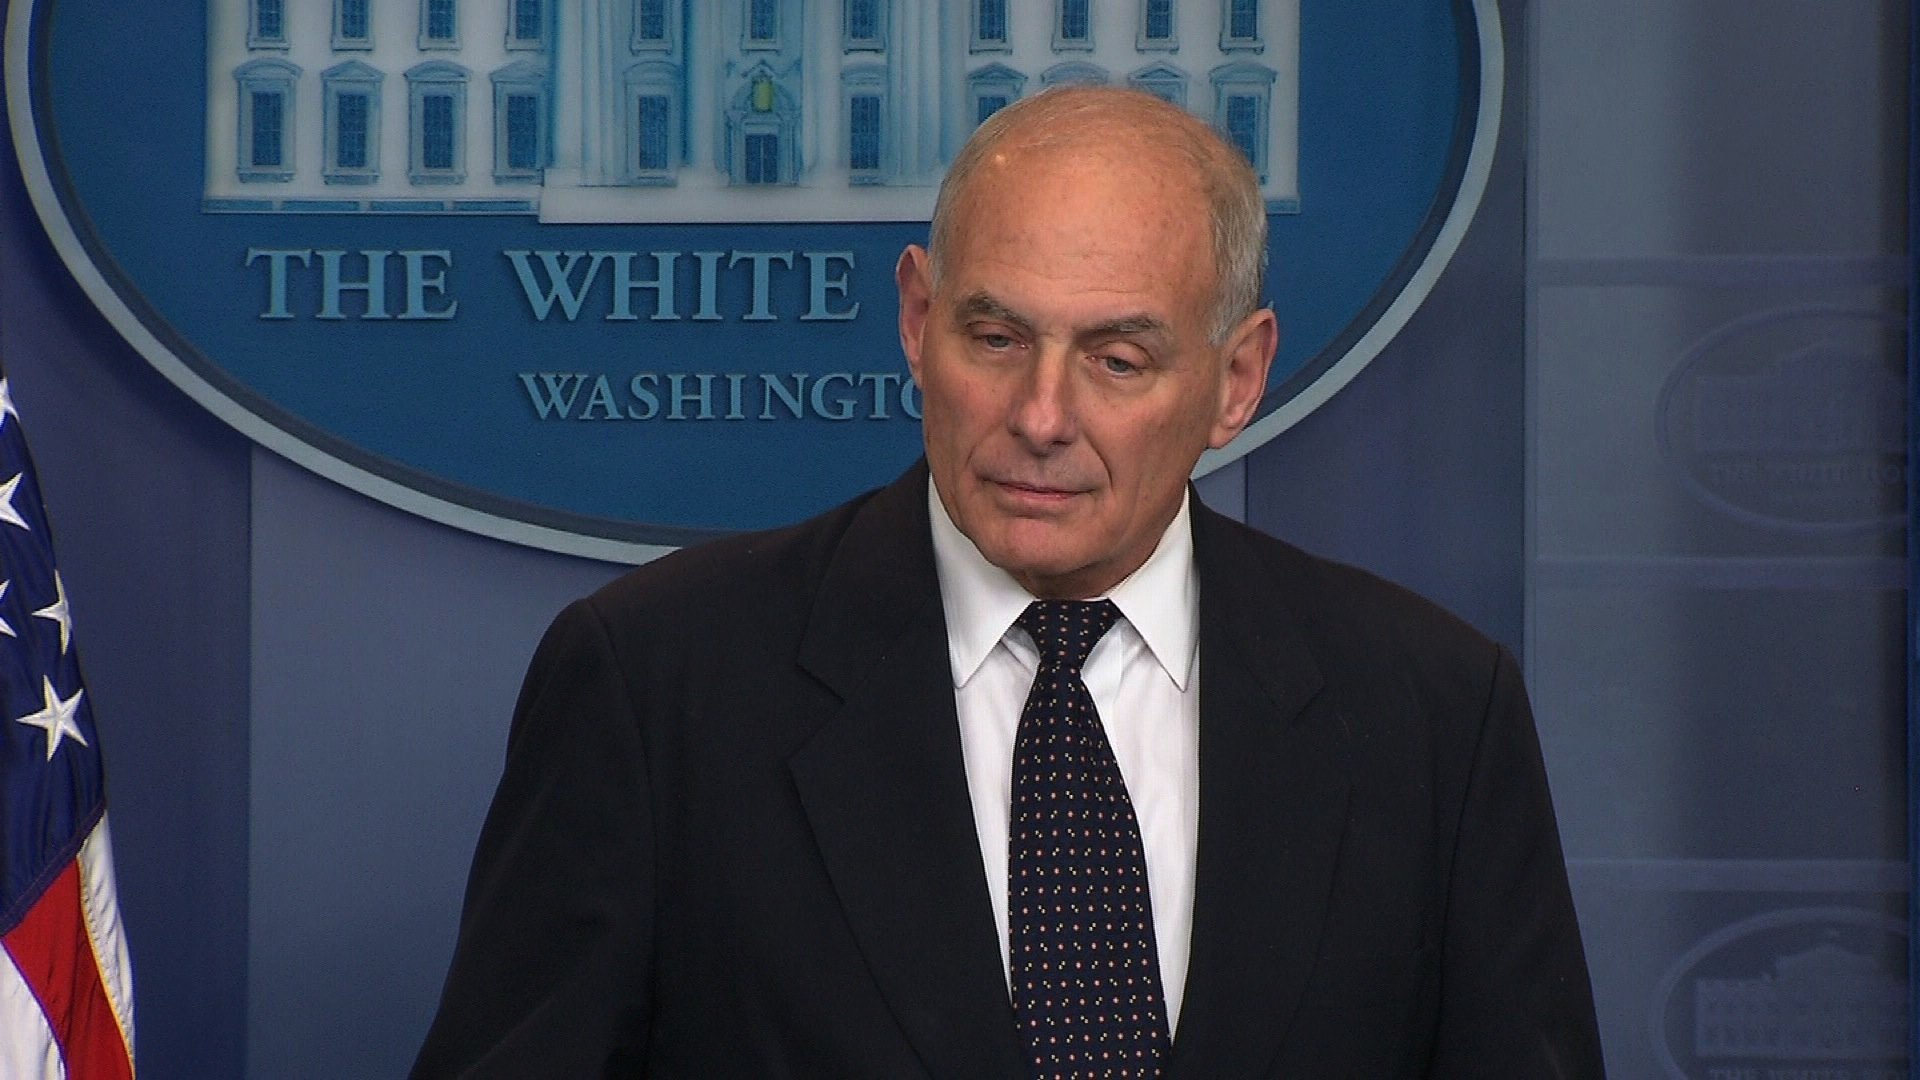 White House chief of staff John Kelly has warned President Donald Trump to be careful about talking to witnesses in the Russia investigation, a White House official told CNN on Thursday.